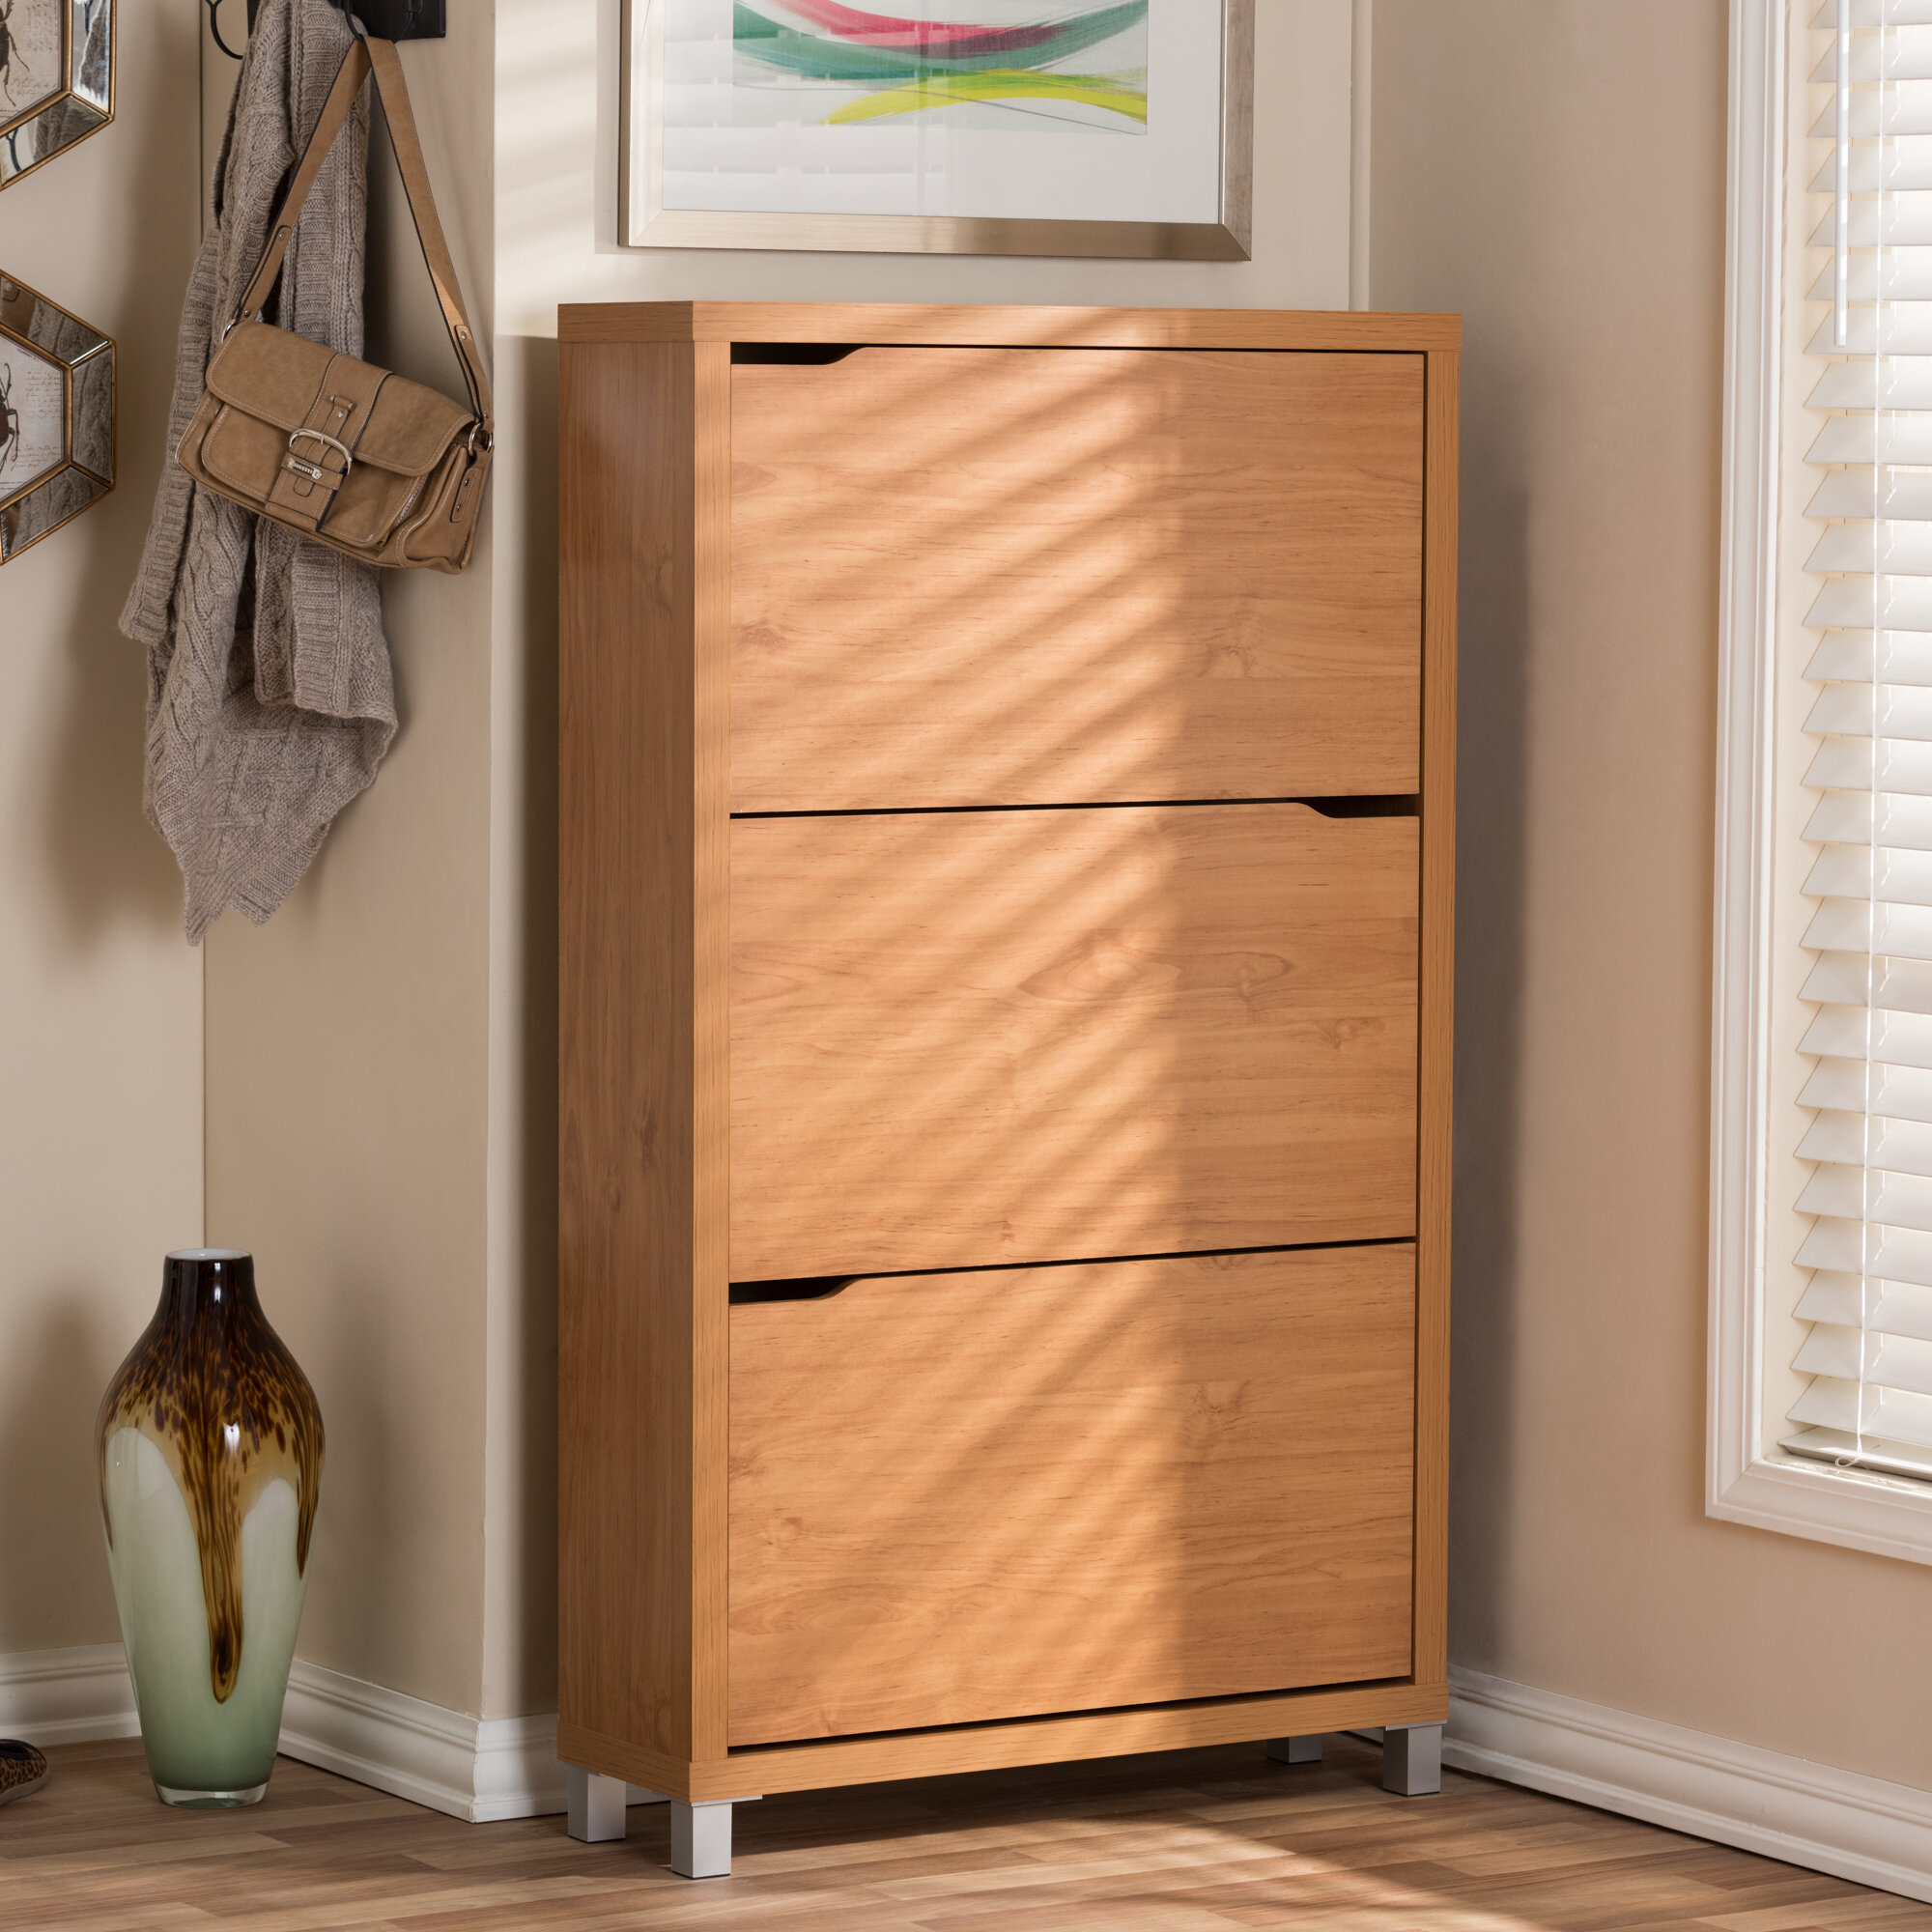 storage g coat cabinet white hallway org childcarepartnerships hall shoe